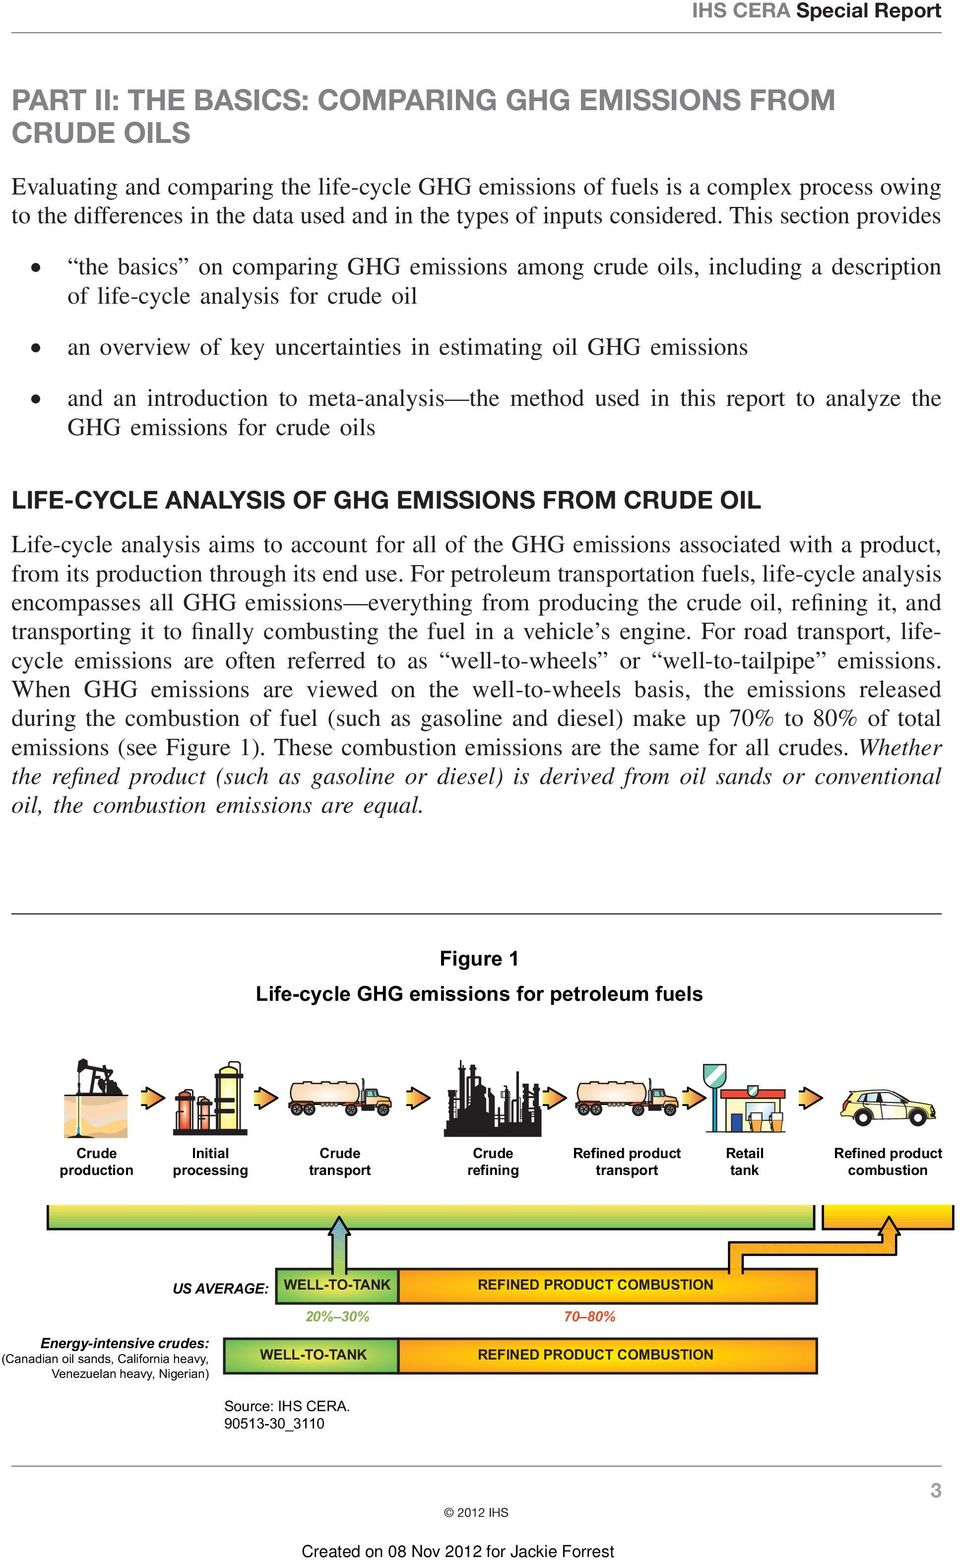 This section provides the basics on comparing GHG emissions among crude oils, including a description of life-cycle analysis for crude oil an overview of key uncertainties in estimating oil GHG